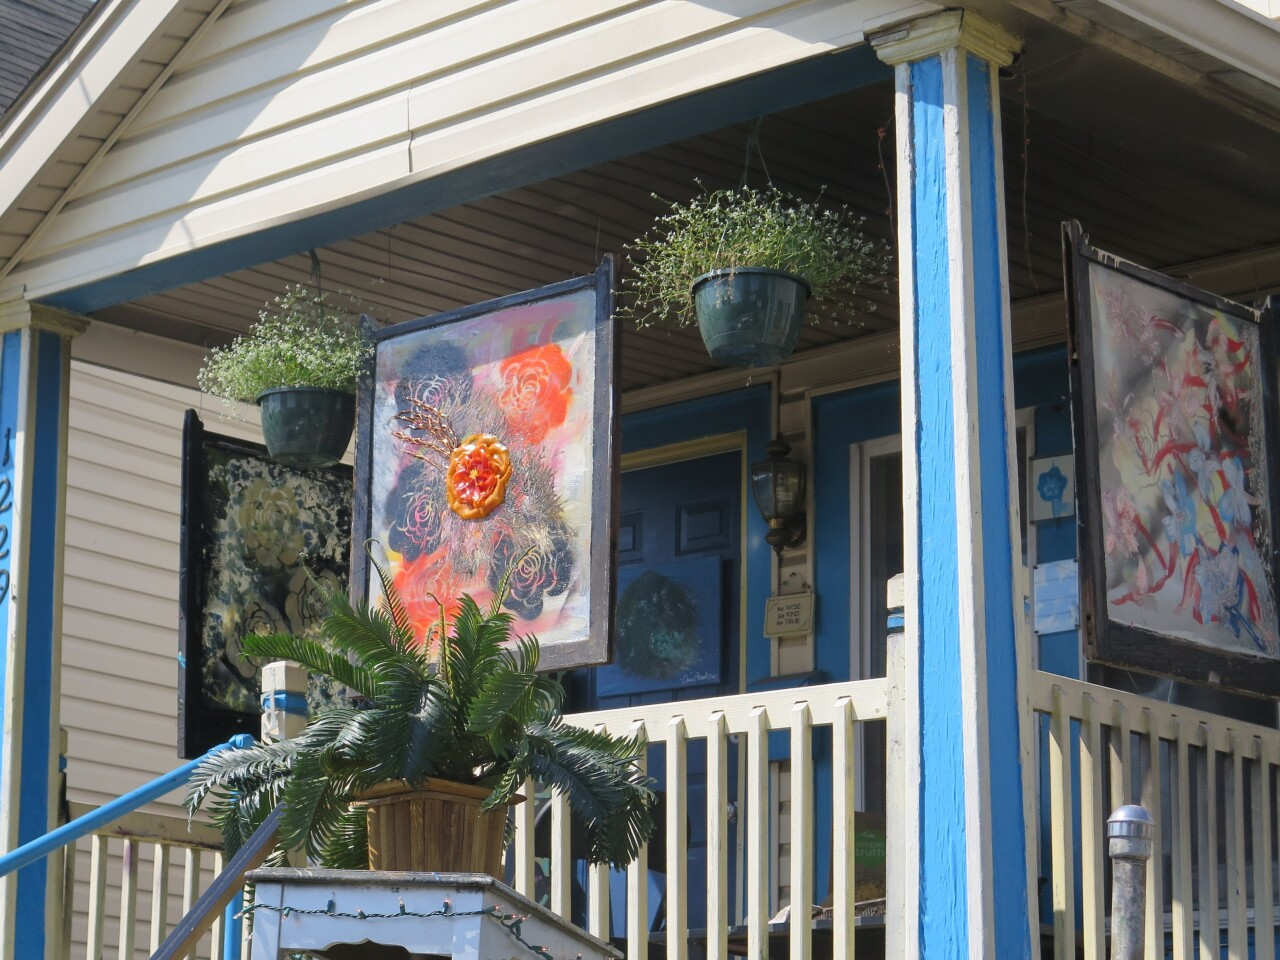 Nina Edwards has three windows hanging from the porch of her house in Covington. The most prominent window features flowers in blue and orange.